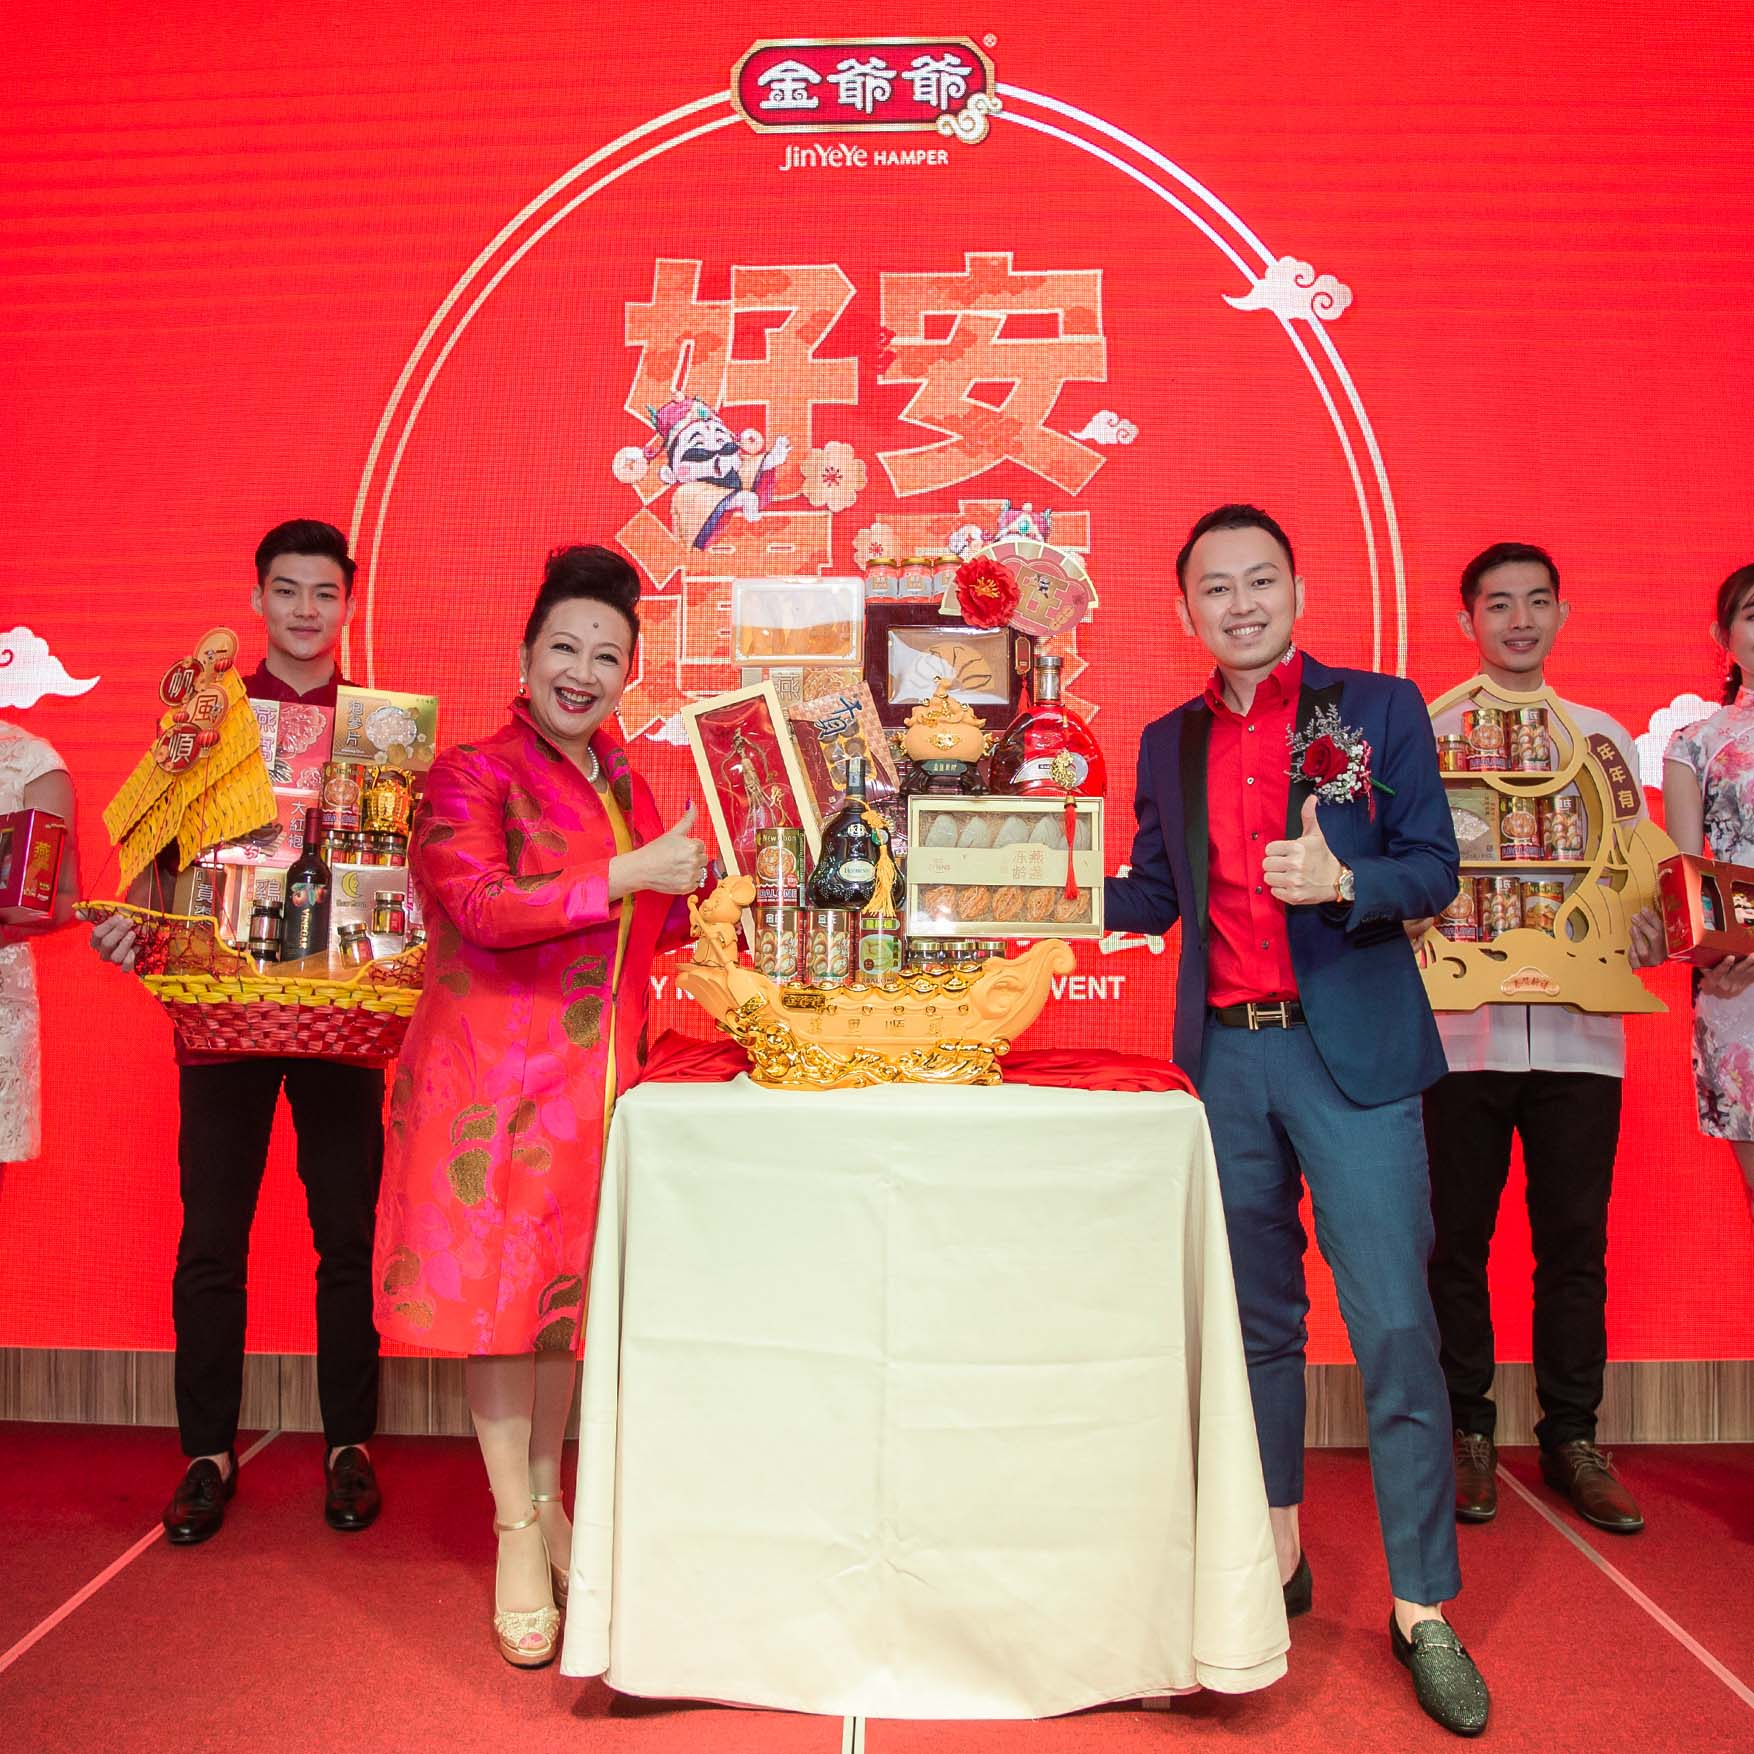 5 Reasons Why I Like Jin Ye Ye's Gift Hampers This CNY